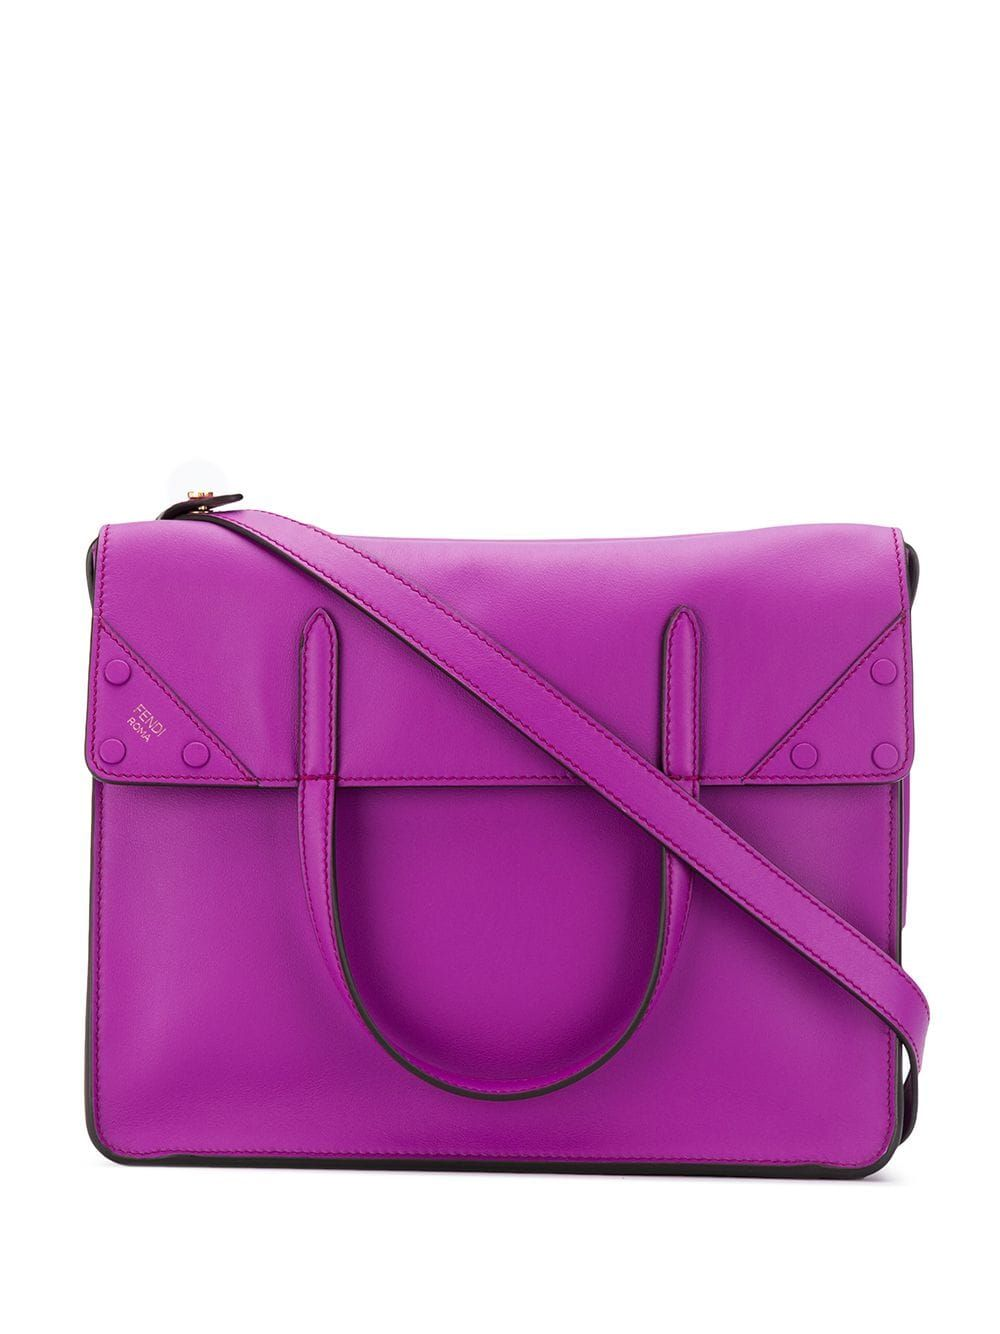 e591cc42ea Fendi Fendi Flip tote bag - Purple | Products in 2019 | Bags, Purple ...